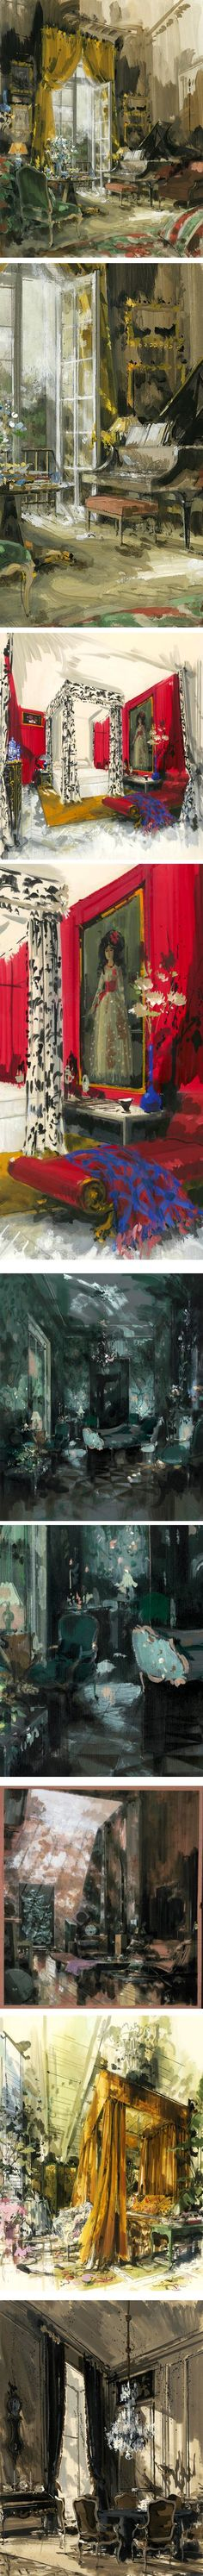 Jeremiah Goodman's lovely paintings of rooms.